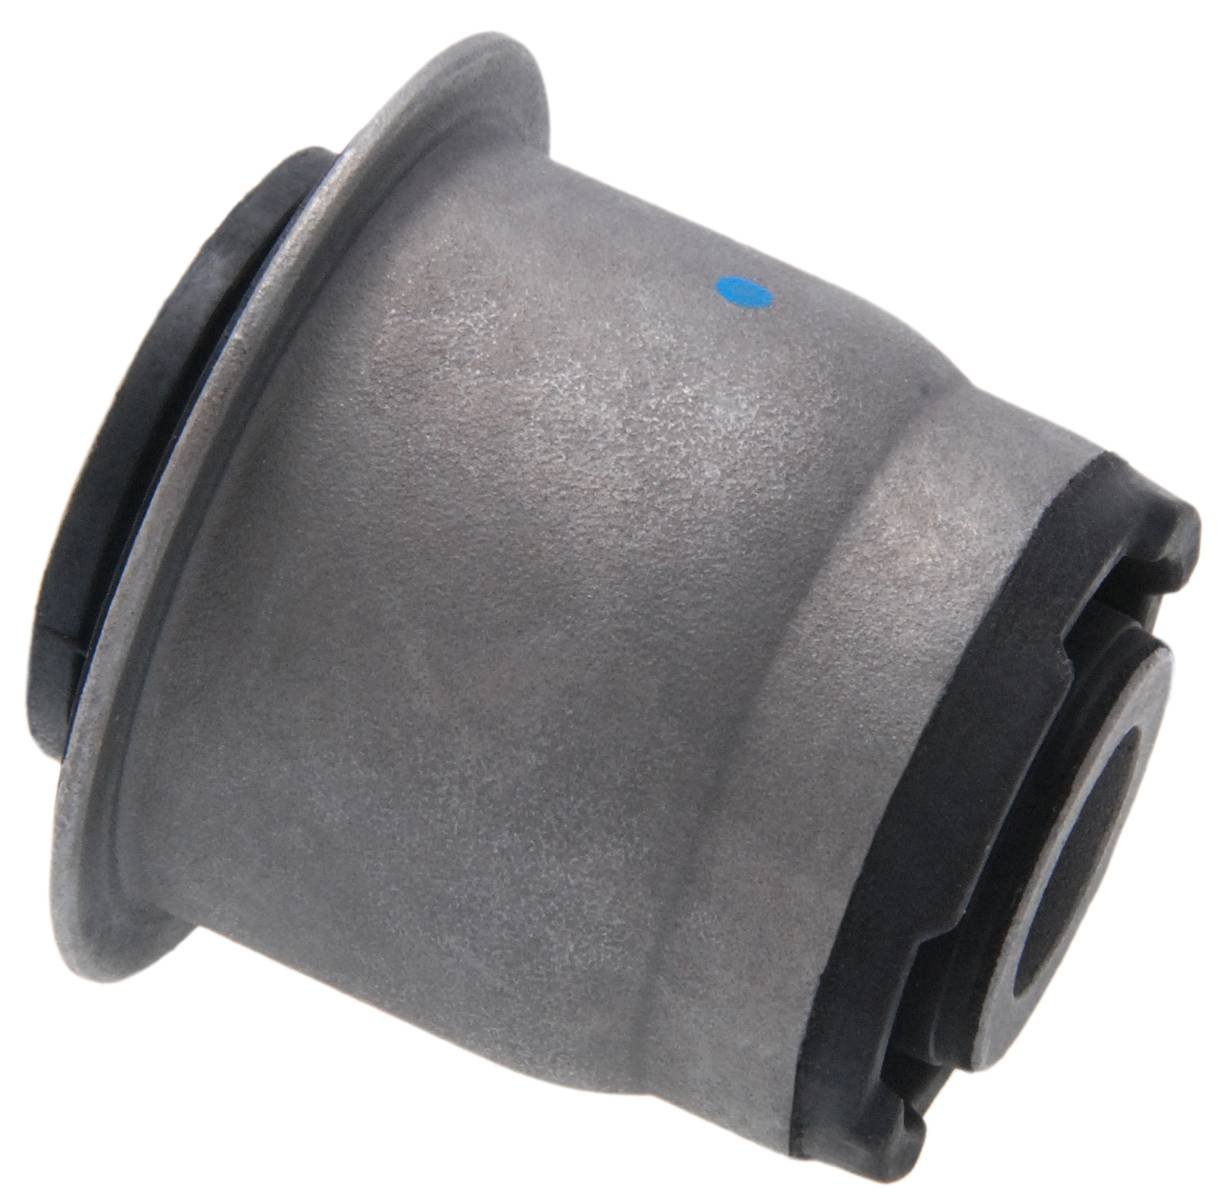 54400Ca000 - Front Body Bushing For Nissan - Febest